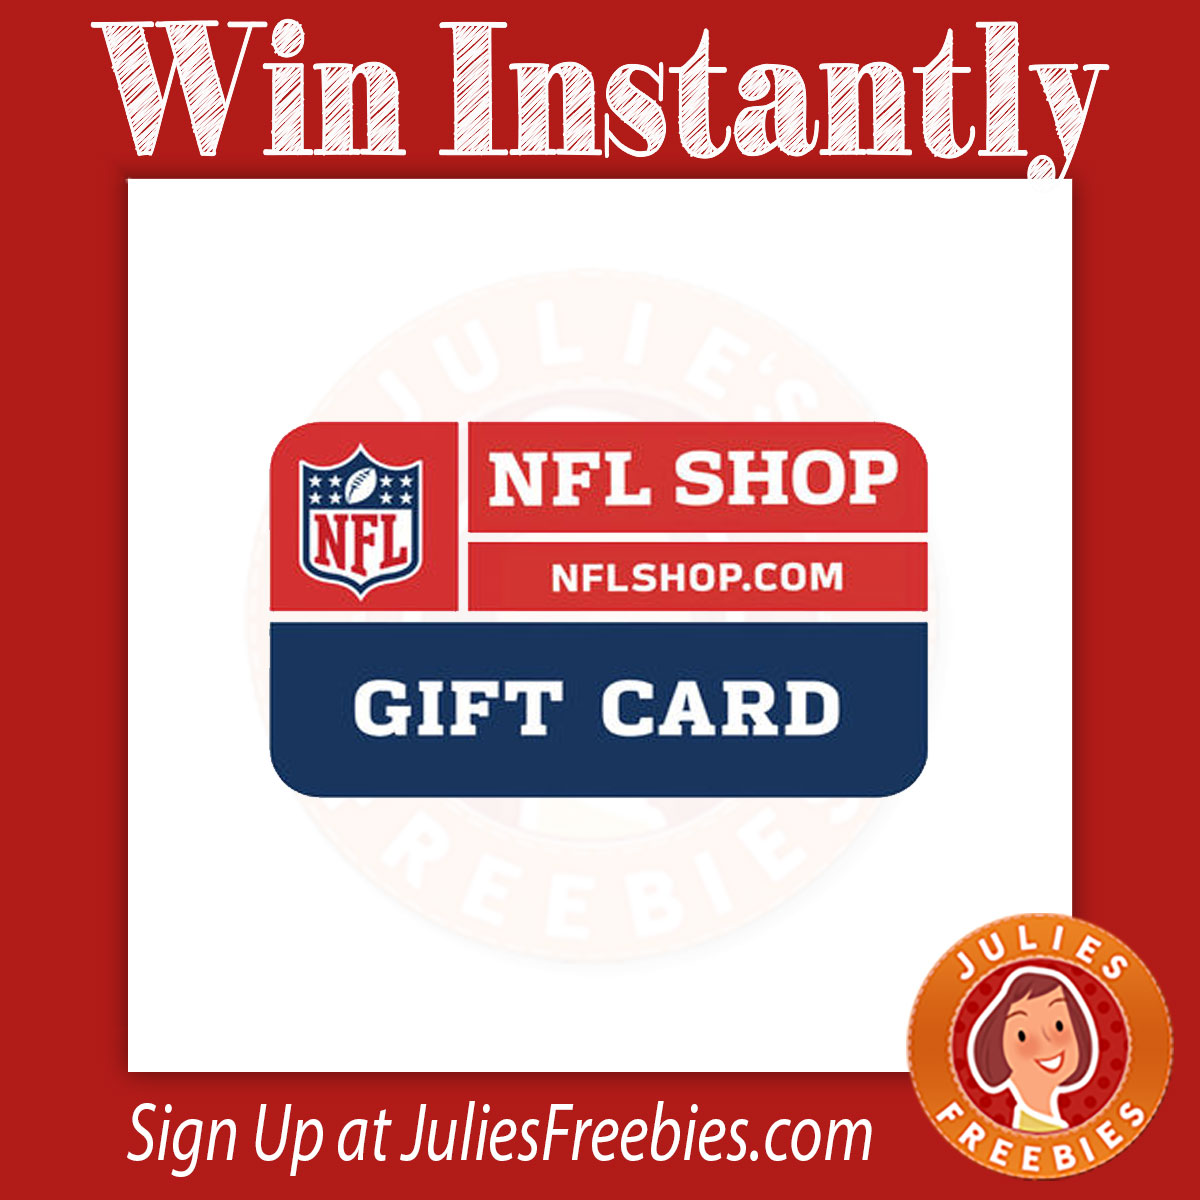 sweepstakes instant win oikos nfl draft experience sweepstakes and instant win 4406